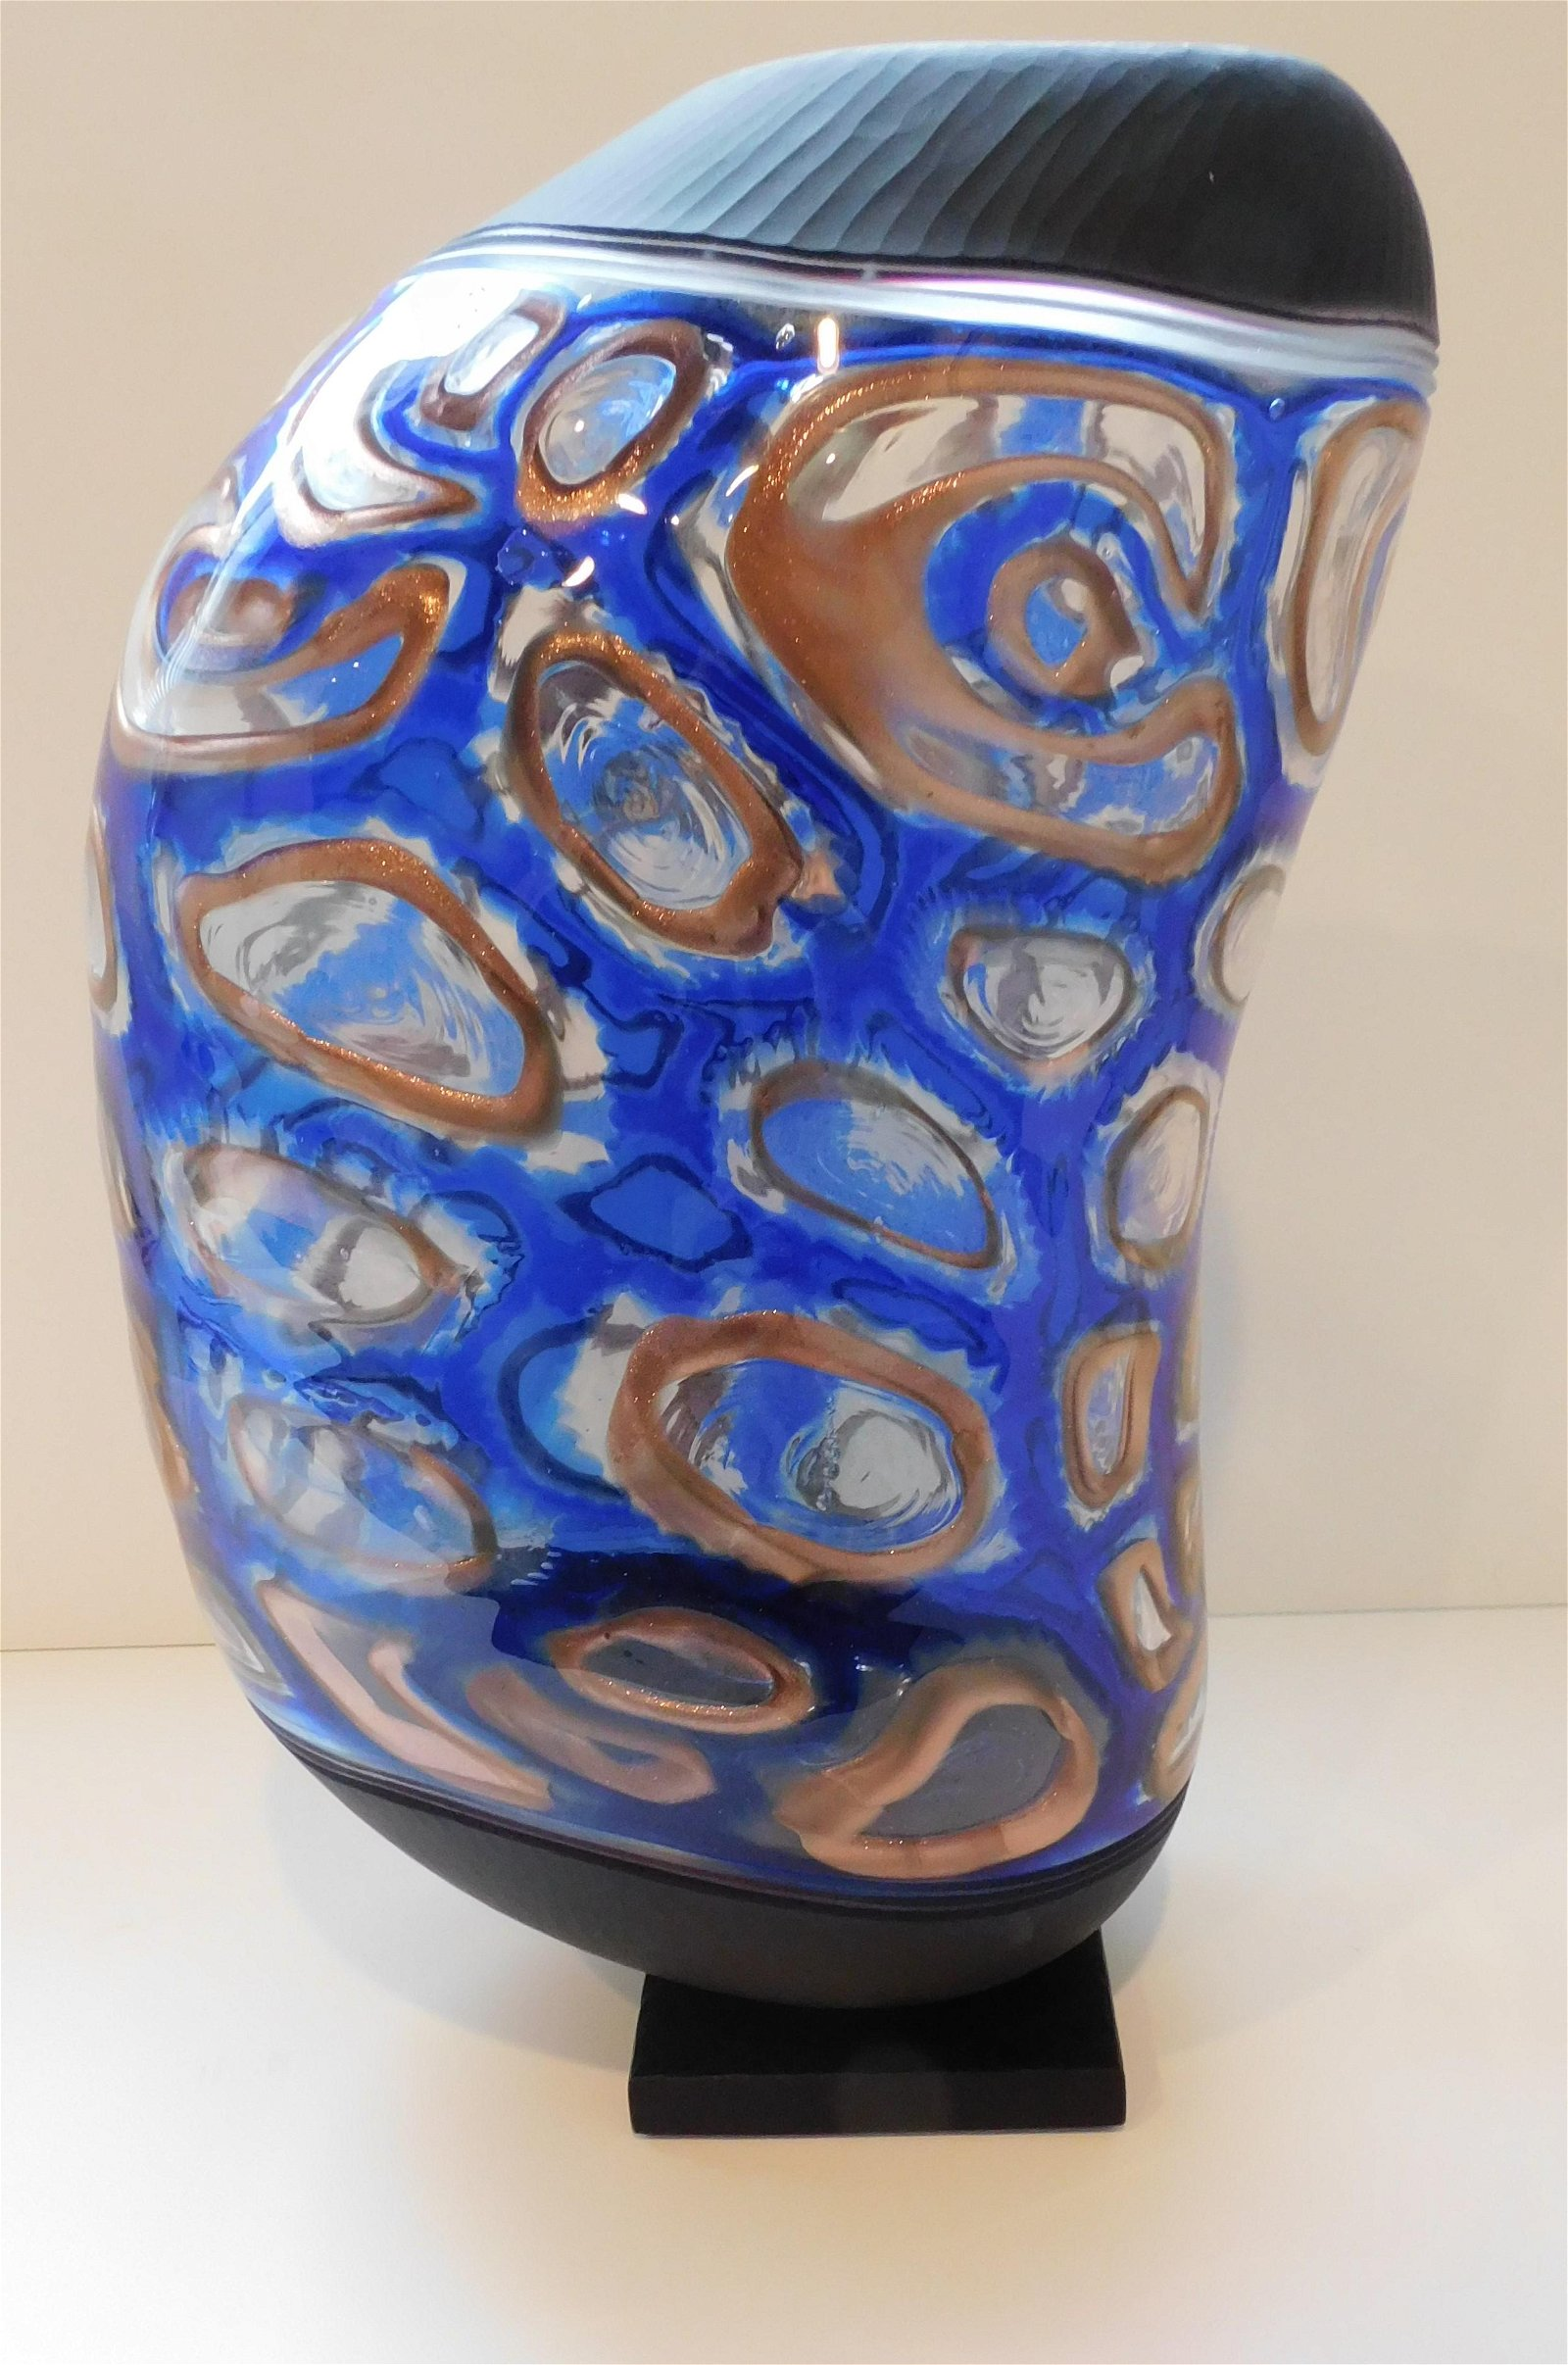 M Schiavon Large Art Glass Murano Vase Signed by the